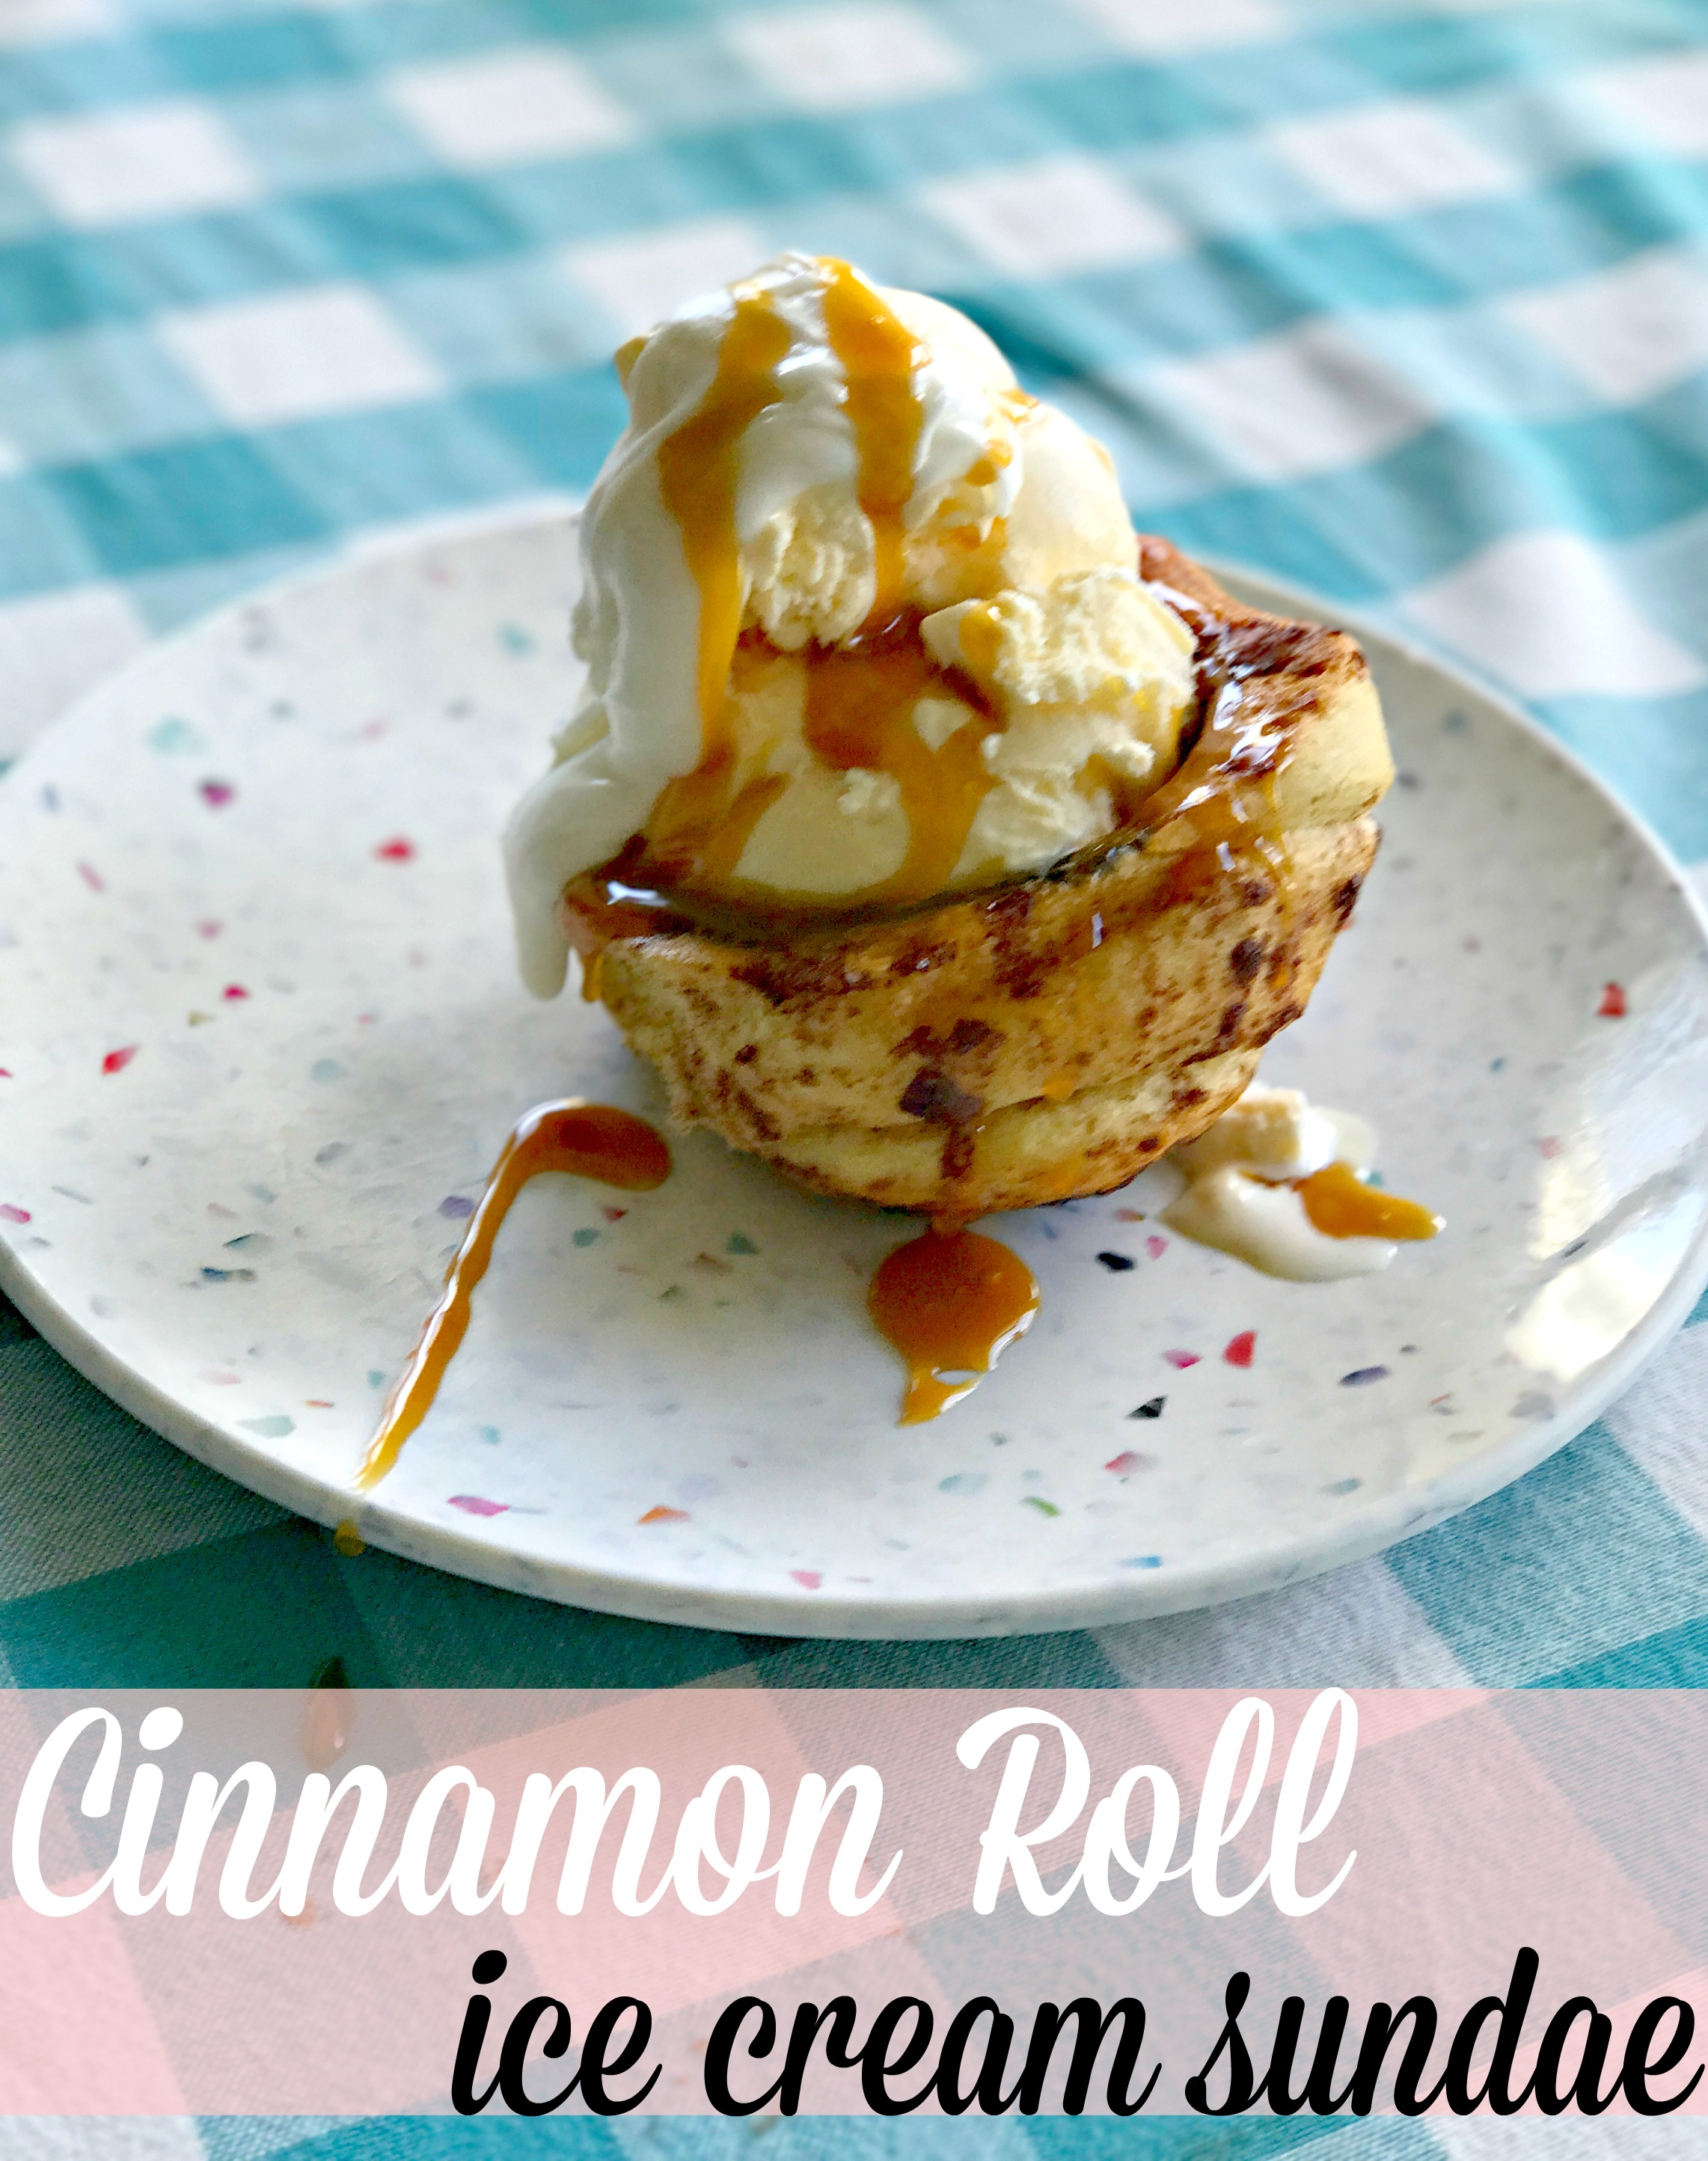 Cinnamon Roll Ice Cream Bowls